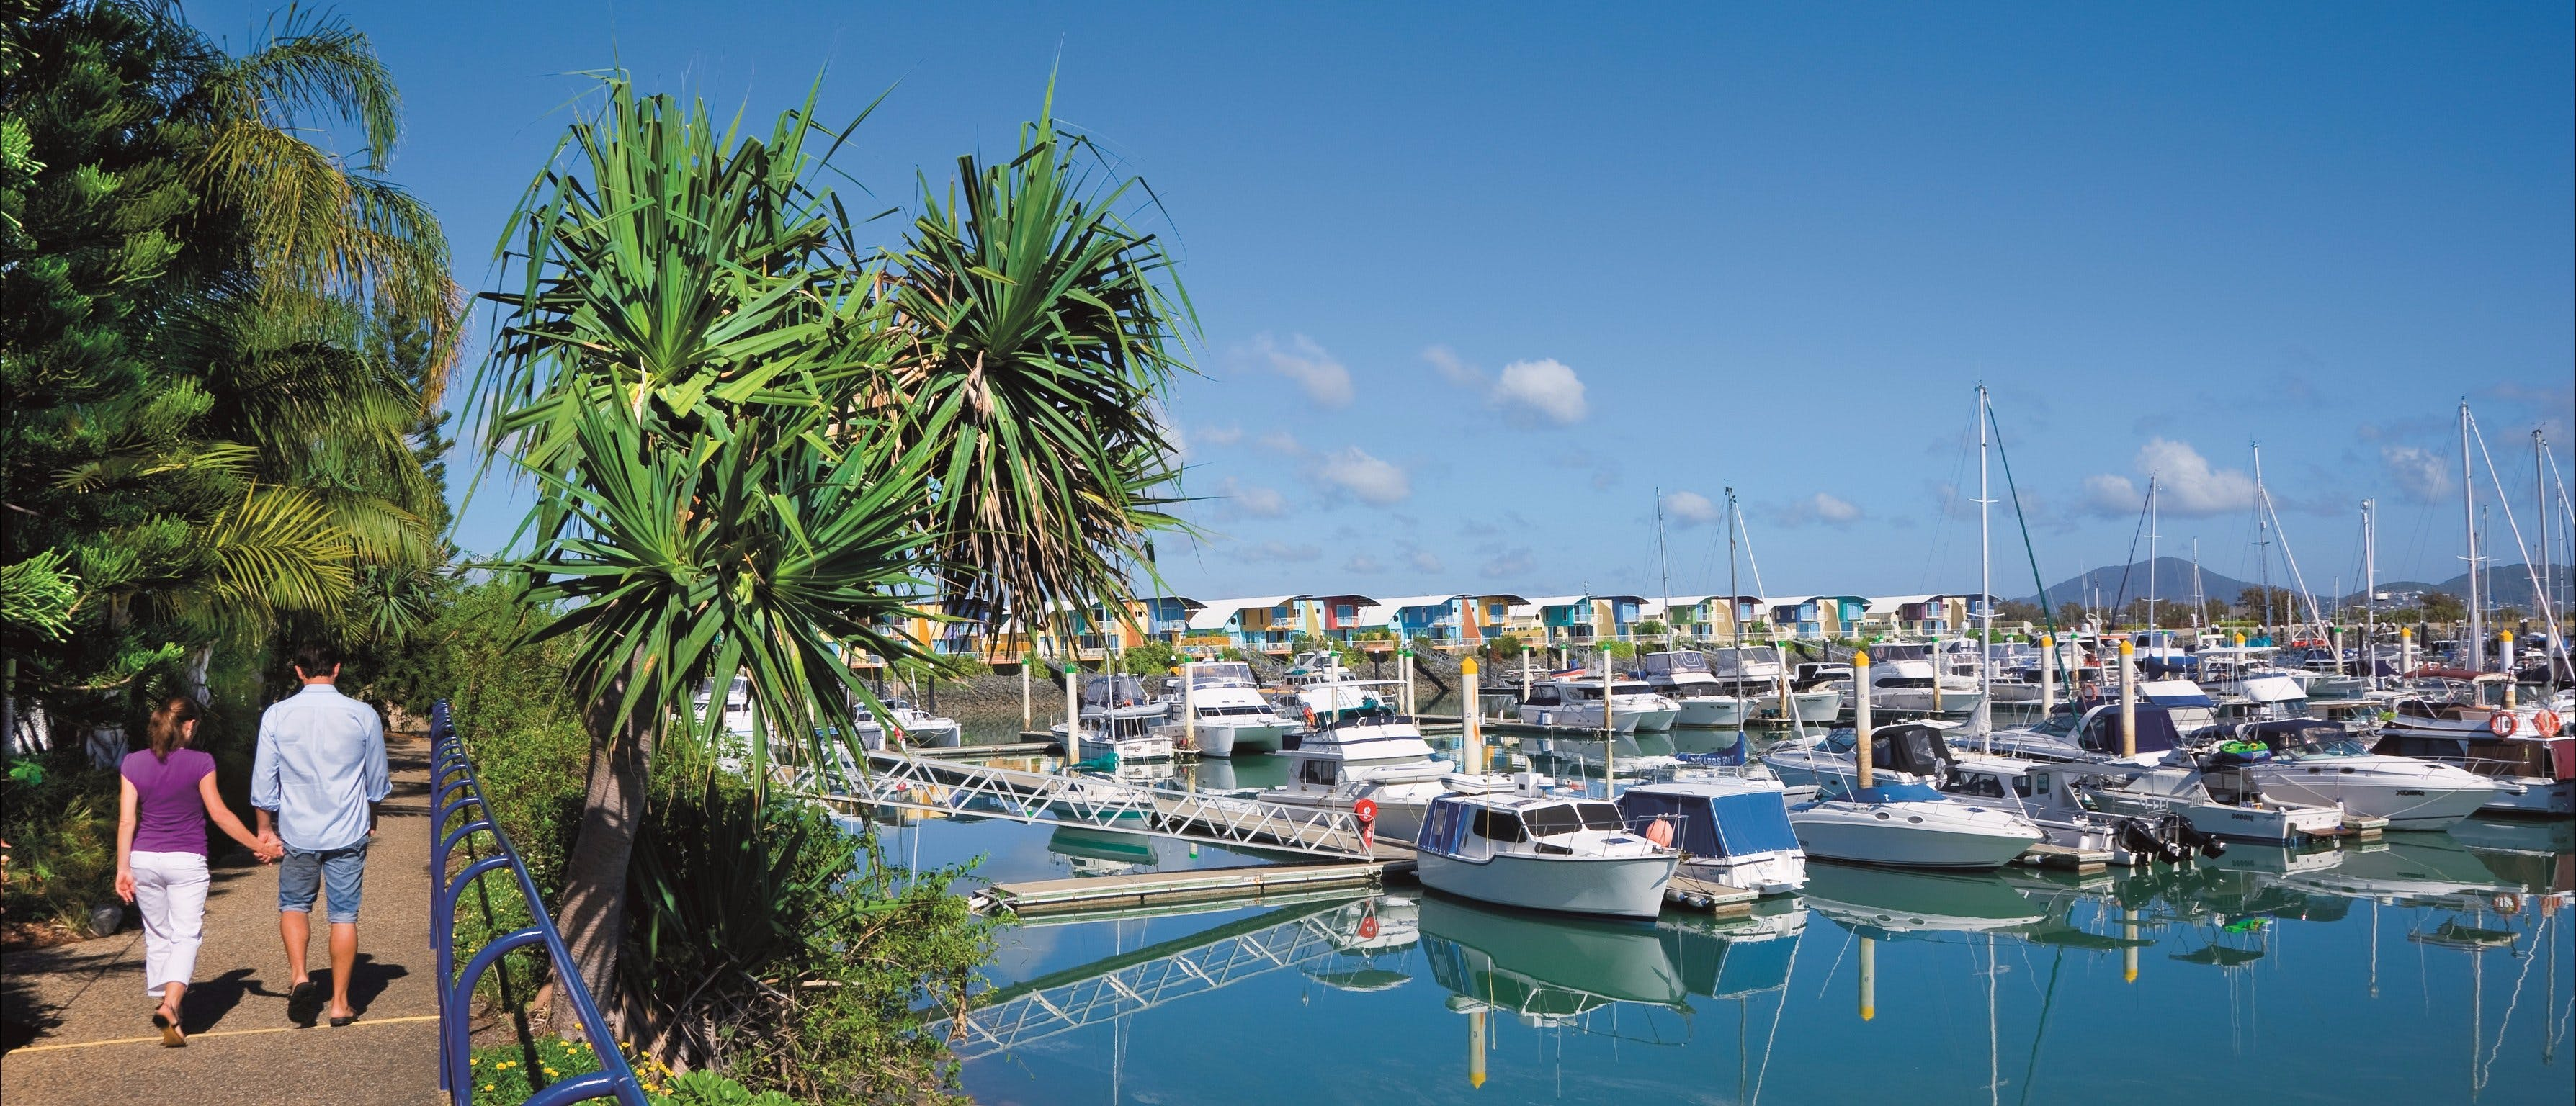 Keppel Bay Fishing Adventure - Accommodation Gold Coast